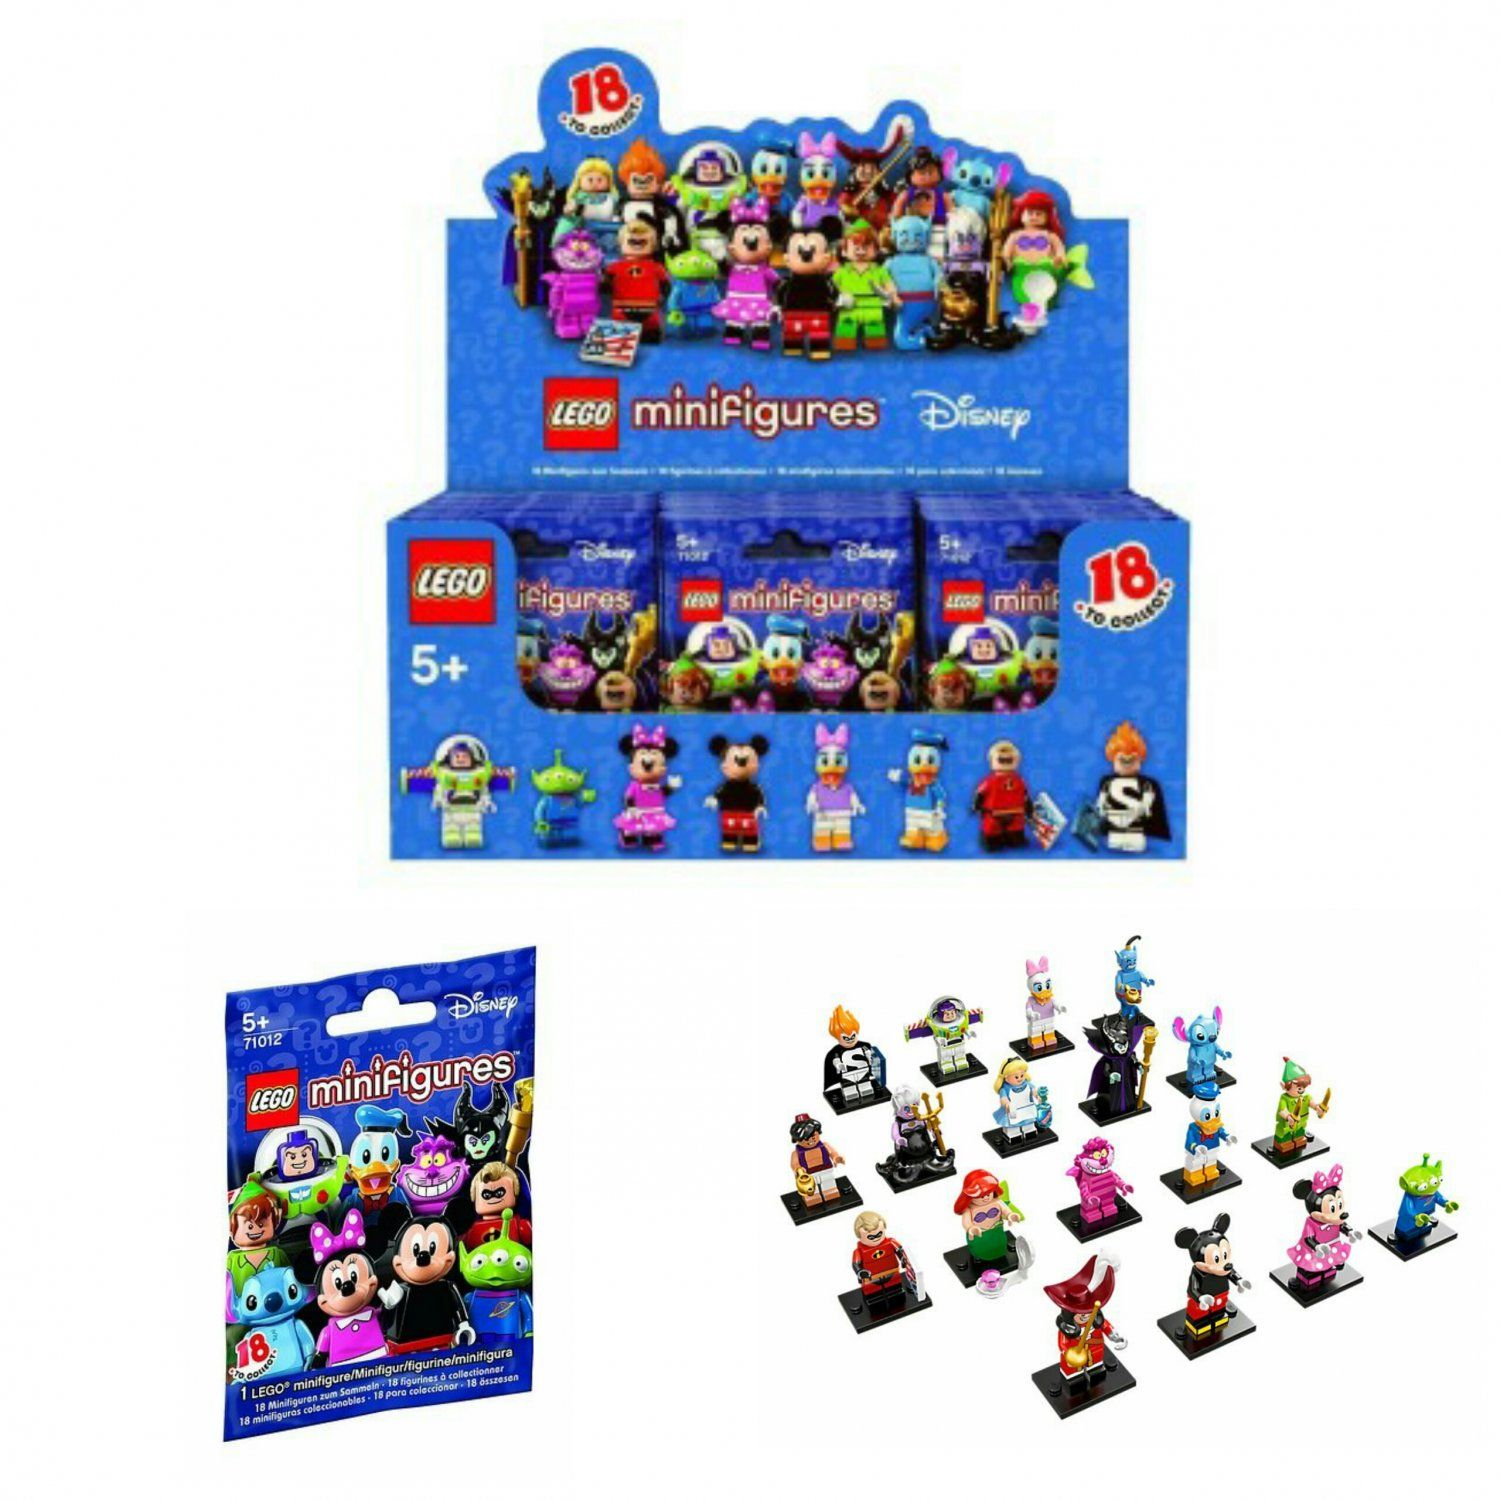 Lego Minifigures The Disney Series Mystery Blind Bag Building Toy Full Case of ×60 Sealed Packs #71012